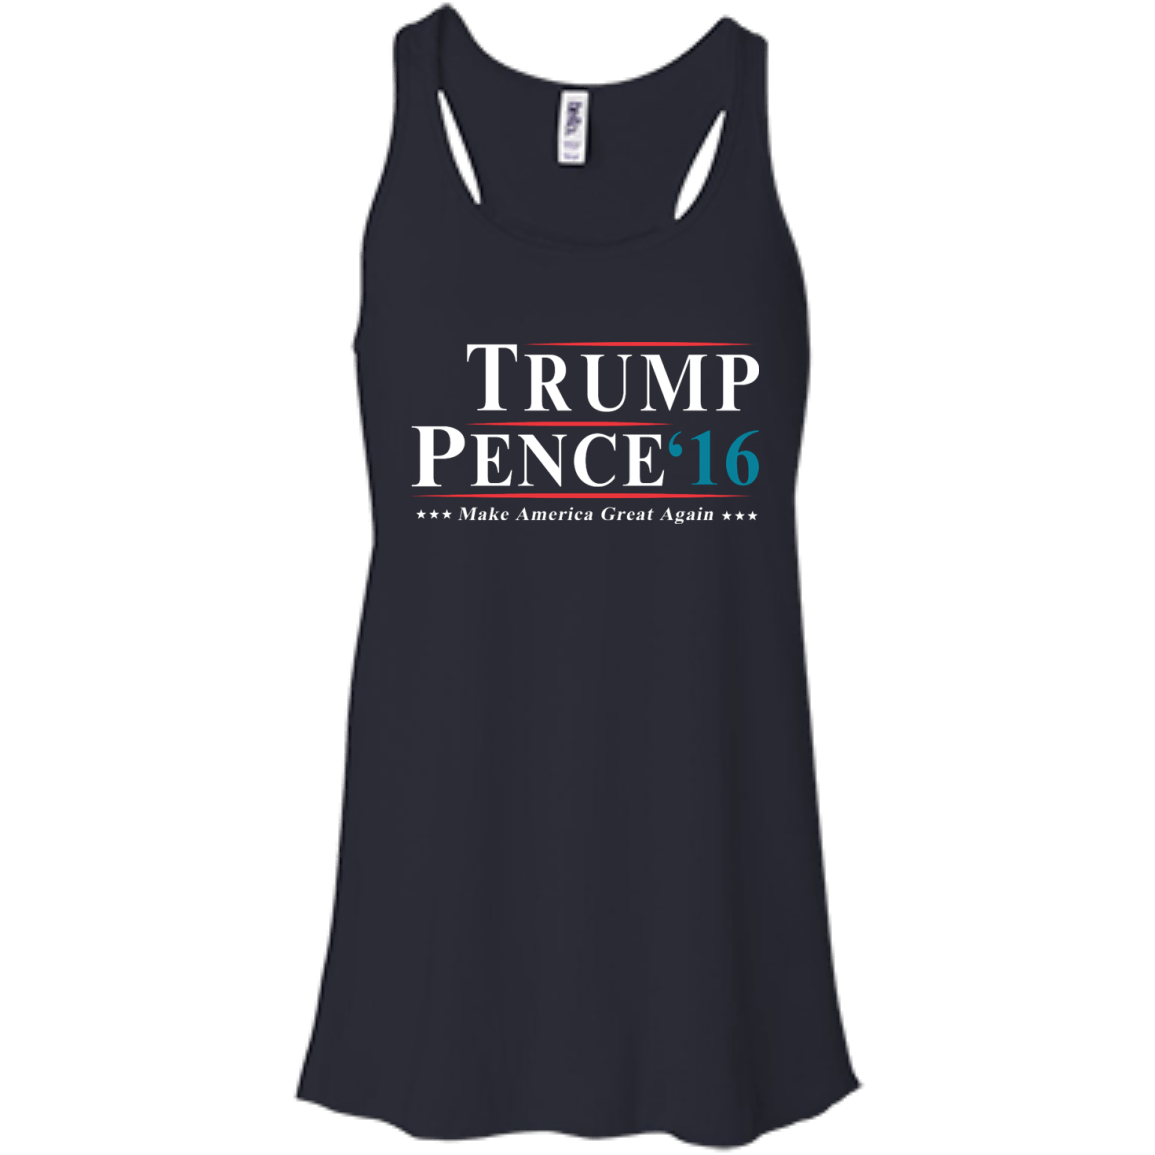 Trump Pence for president 2016 t shirt & hoodies, tank top